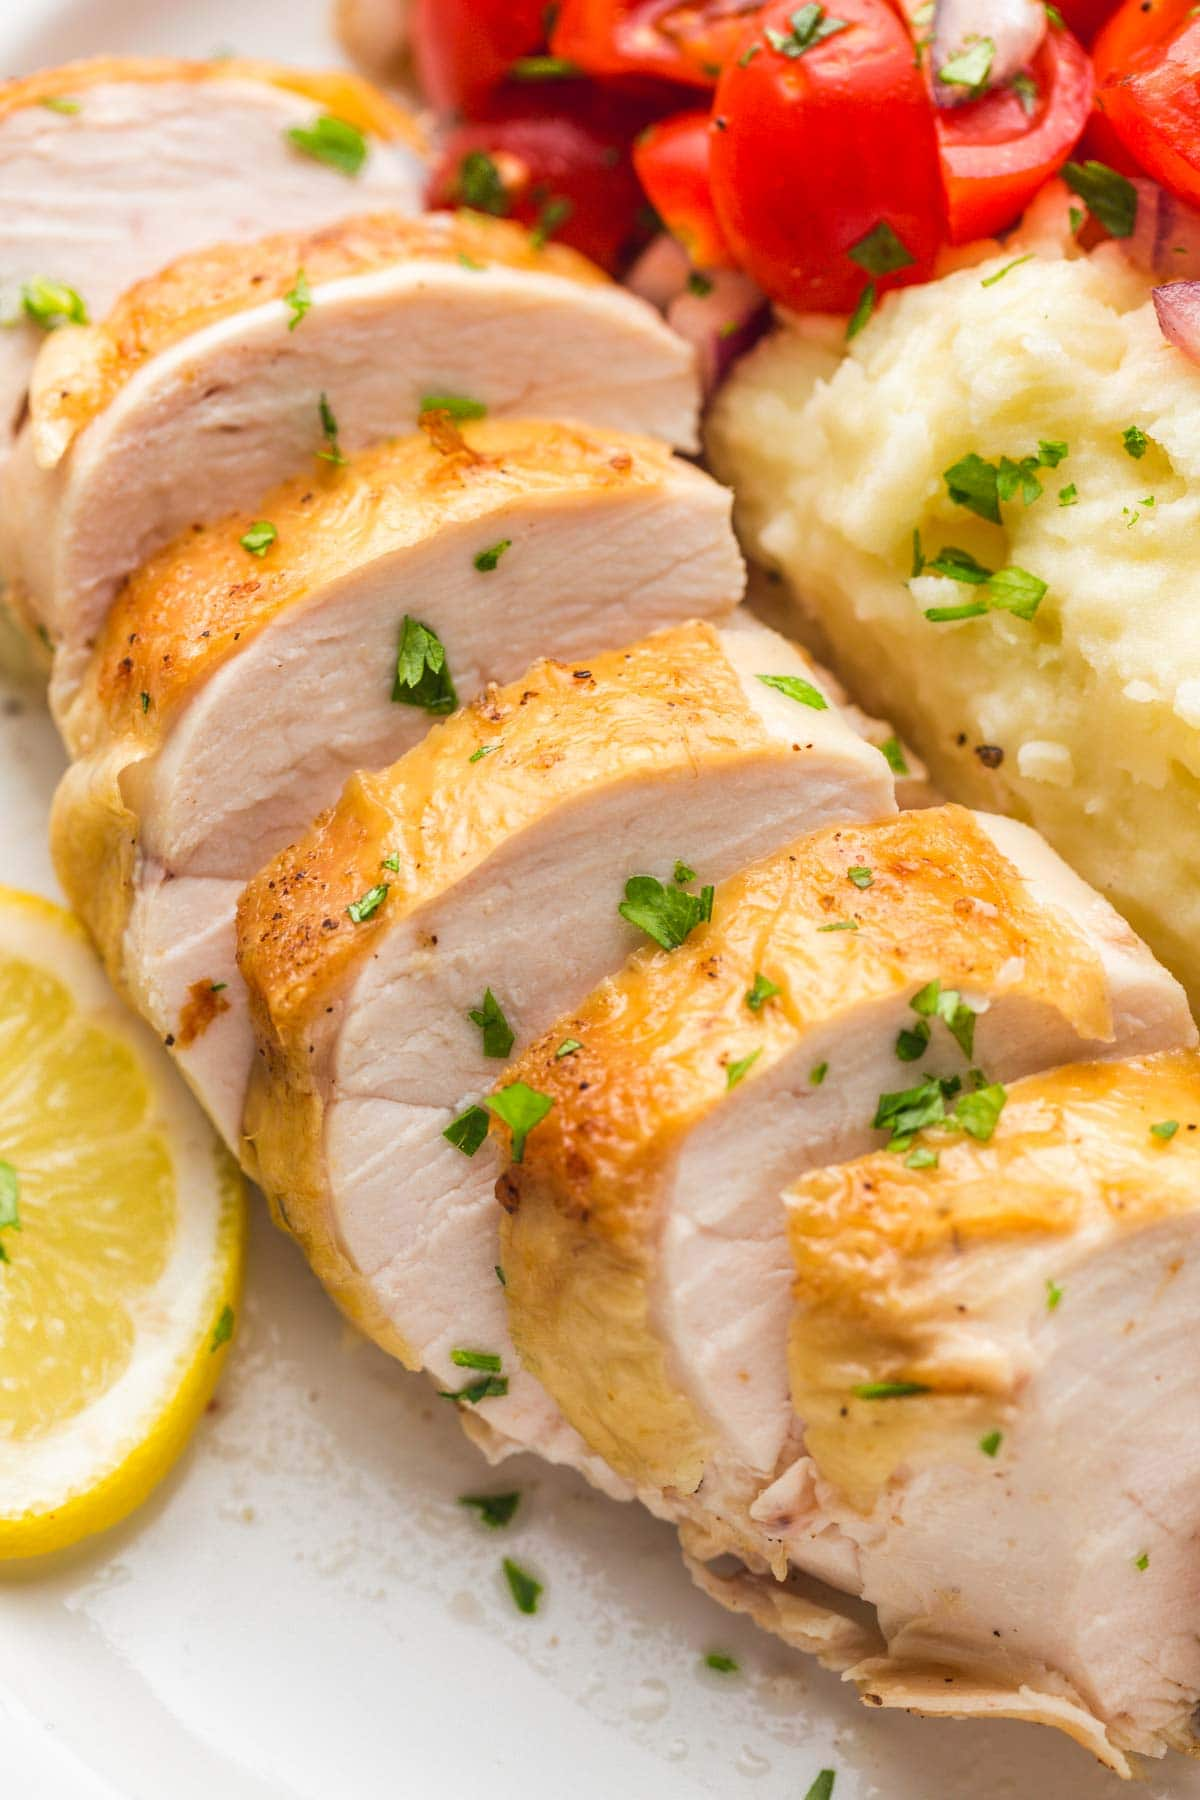 Sliced chicken breast with mashed potatoes and lemon slices.